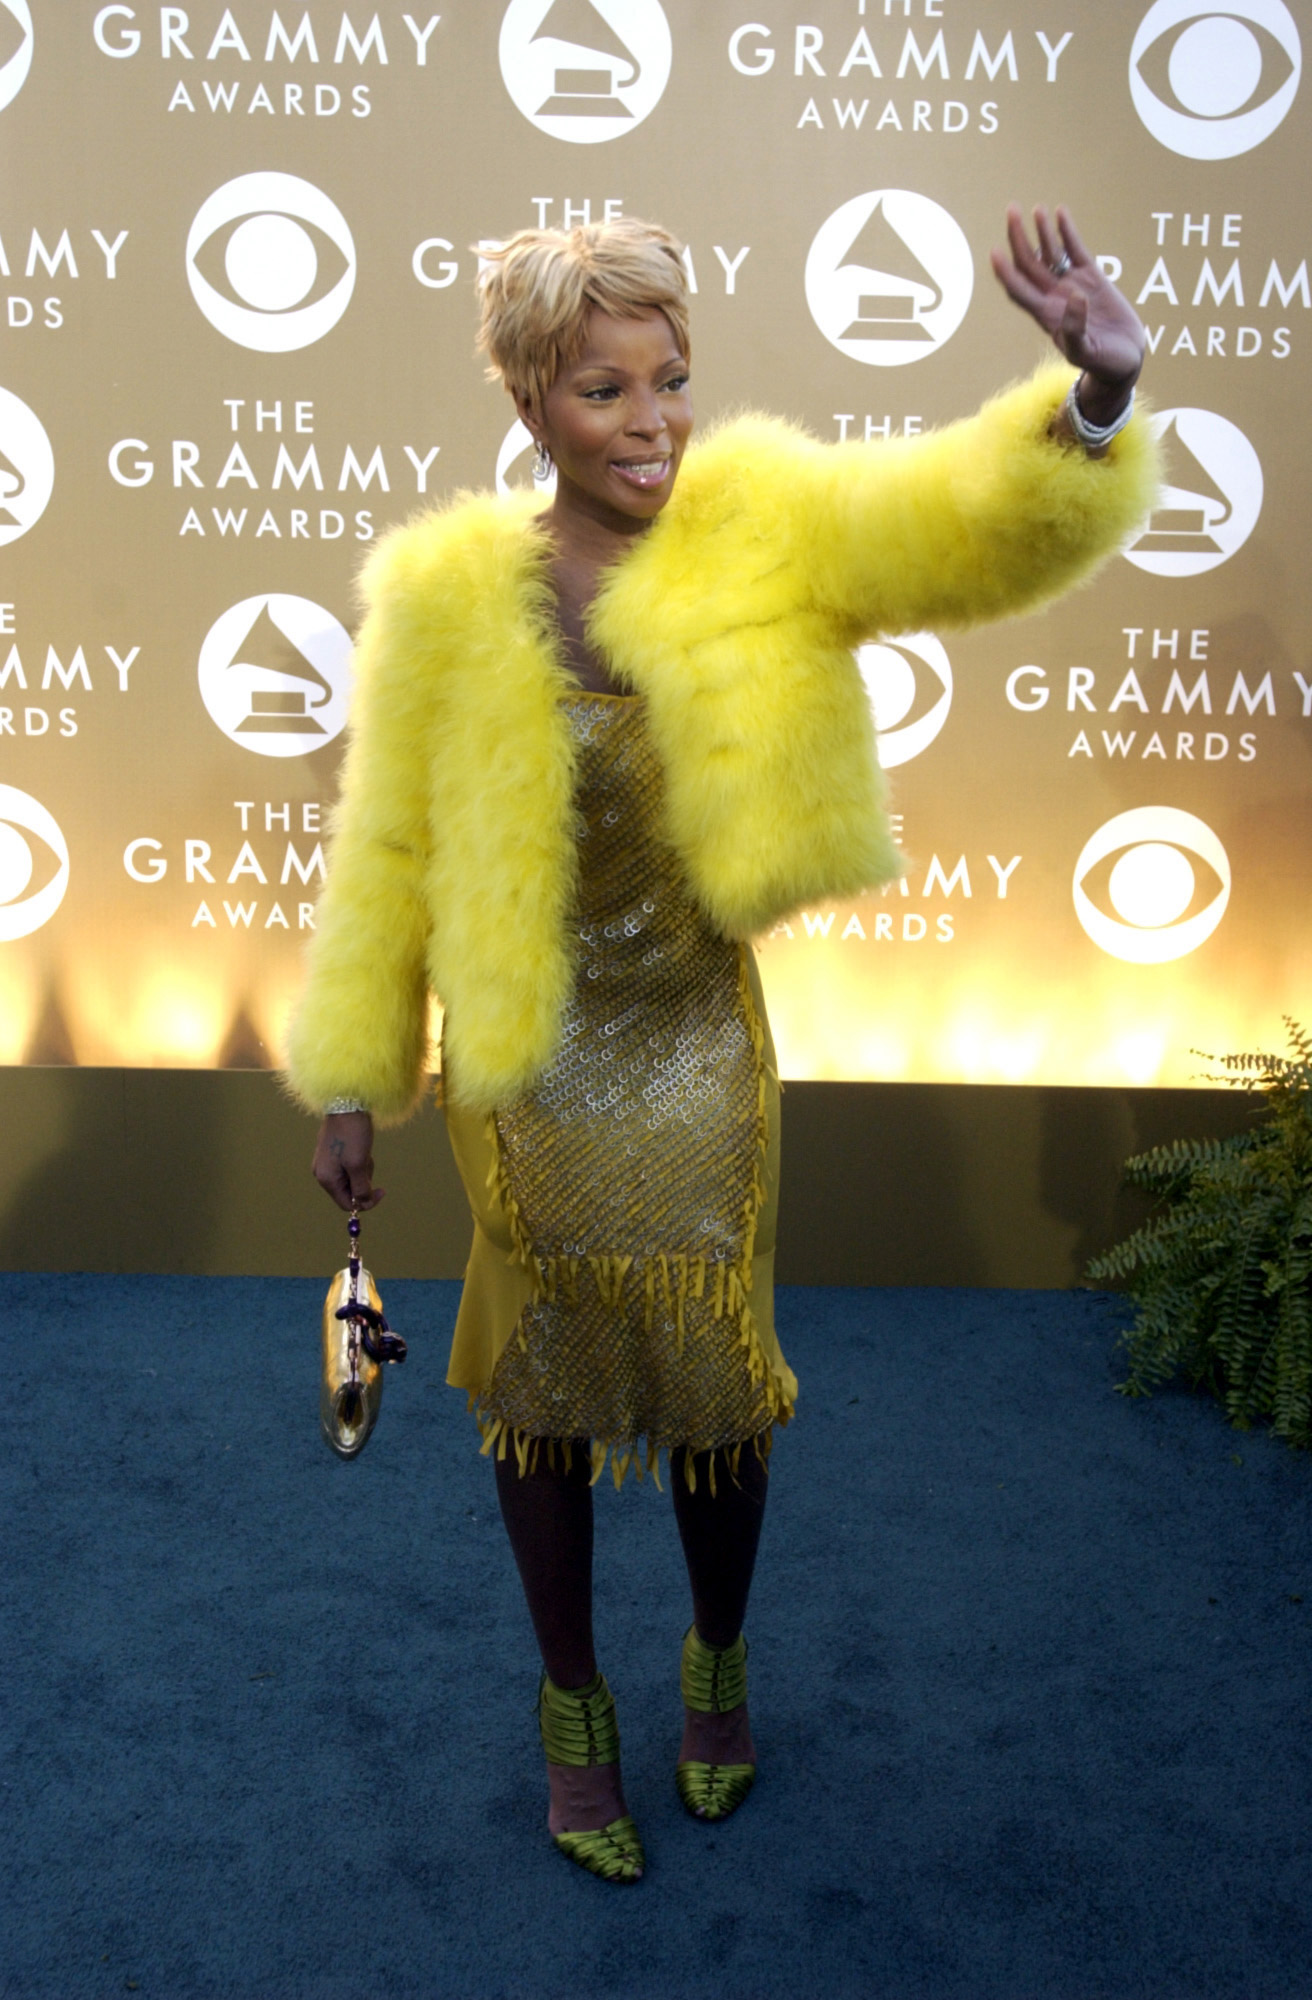 46TH ANNUAL GRAMMY AWARDS –– Singer Mary J. Blige arrives at the 46th Annual Grammy Awards show at t